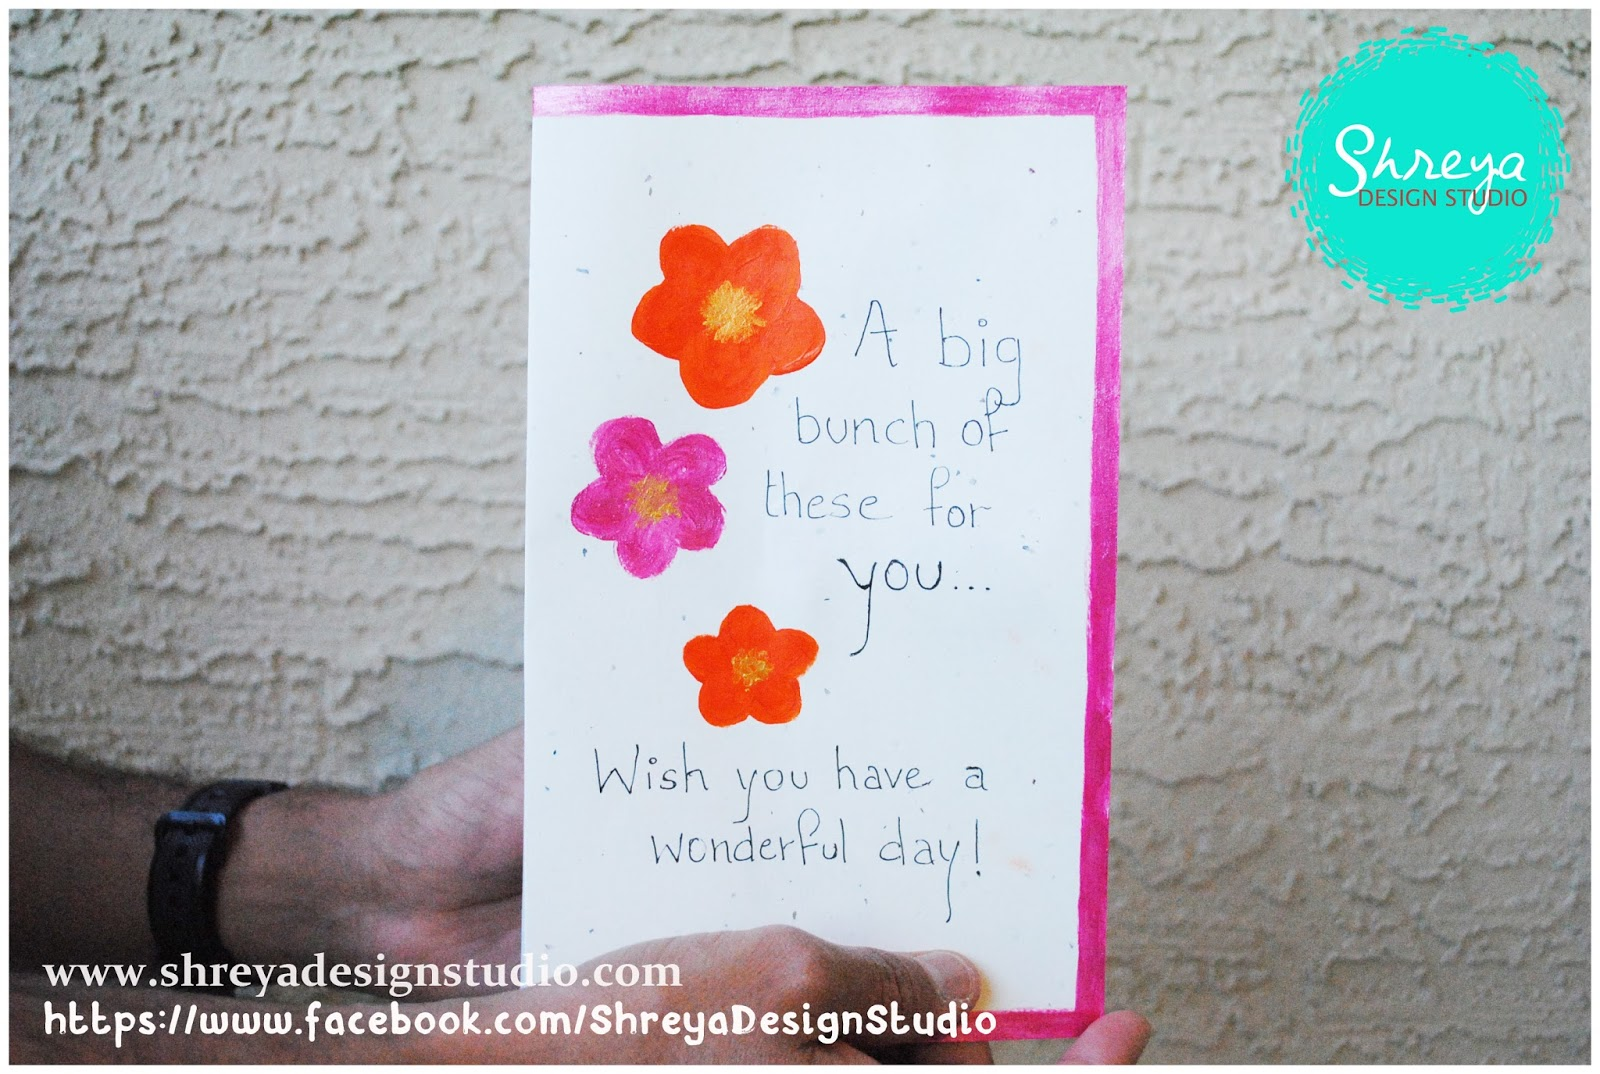 Tutorial how to make a seven flower pop up card shreya design studio trust me it is easy to make and looks beautiful it looks fresh and can be made to greet on several occasions like birthdays anniversaries mothers day kristyandbryce Choice Image